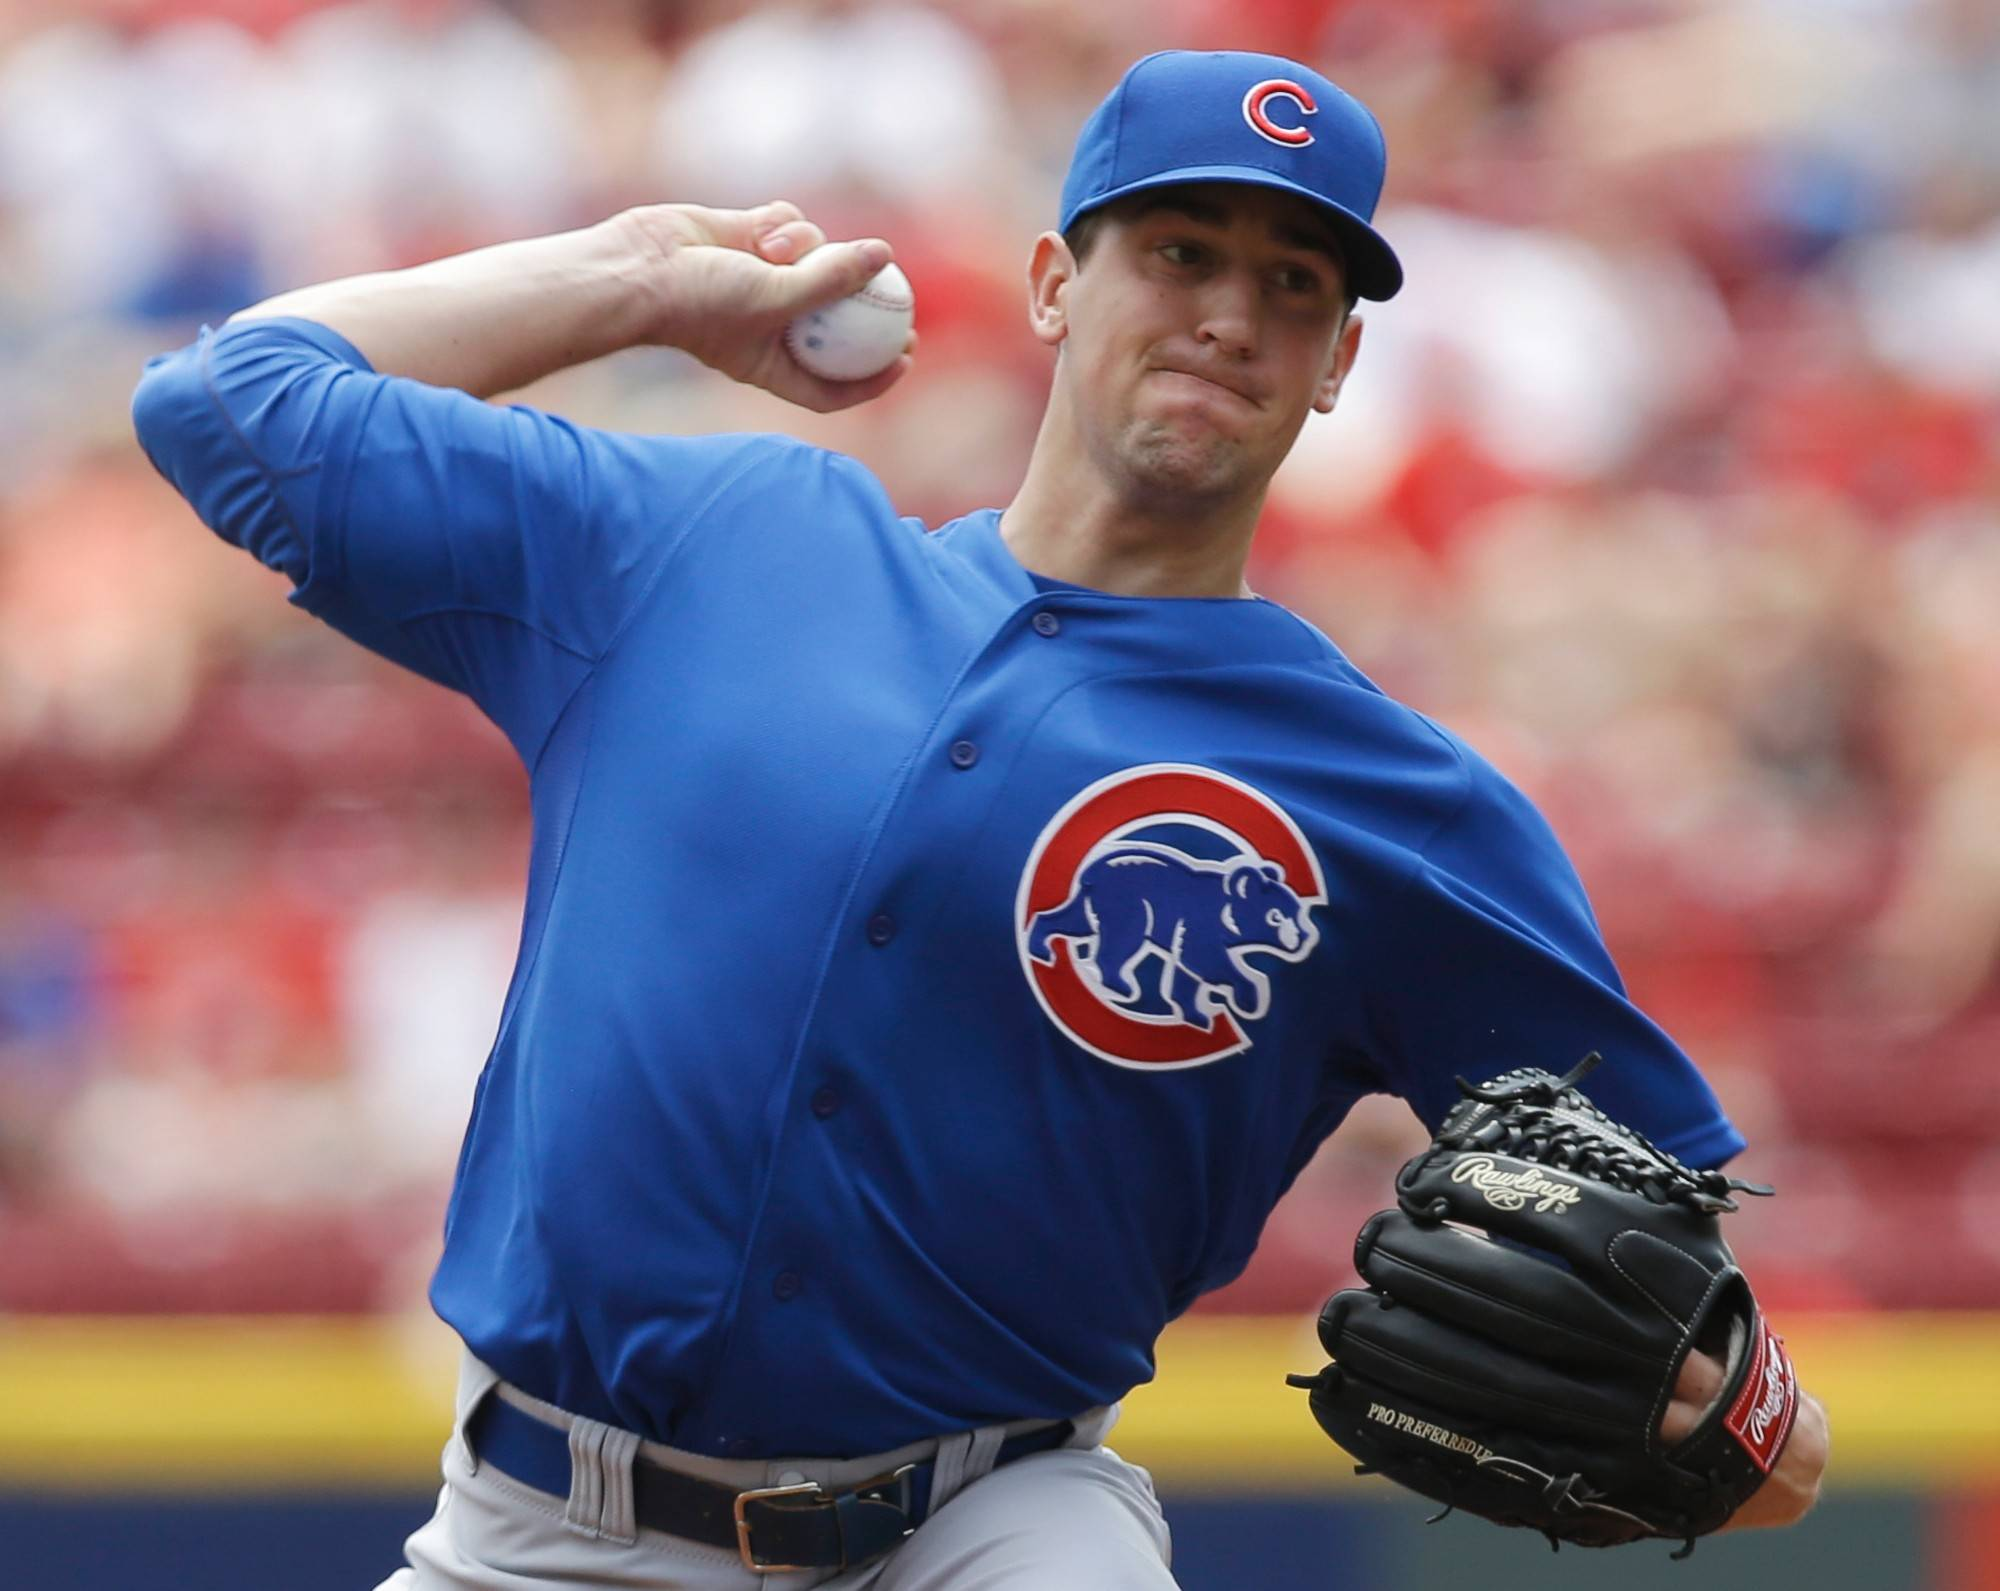 Iowa pitchers ready to contribute to Cubs